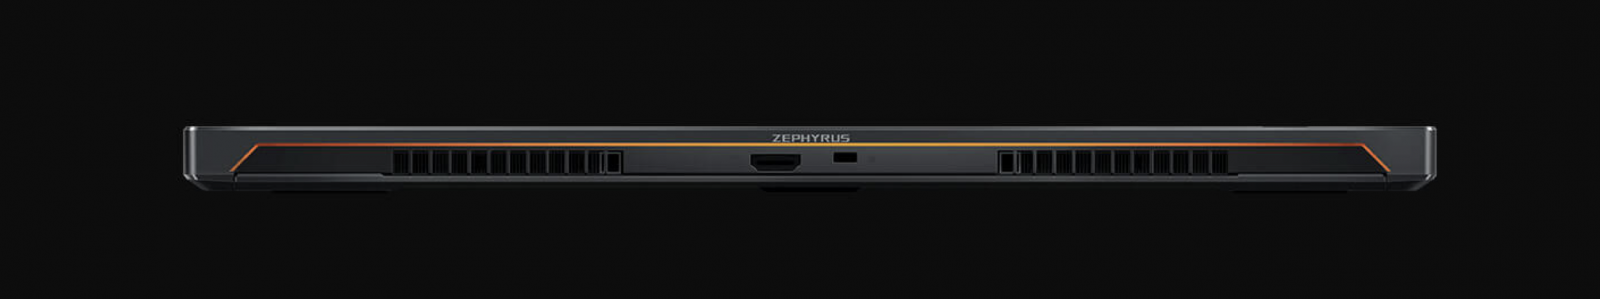 ASUS Announces All-New ZenBook 14 and ROG Zephyrus S in UAE